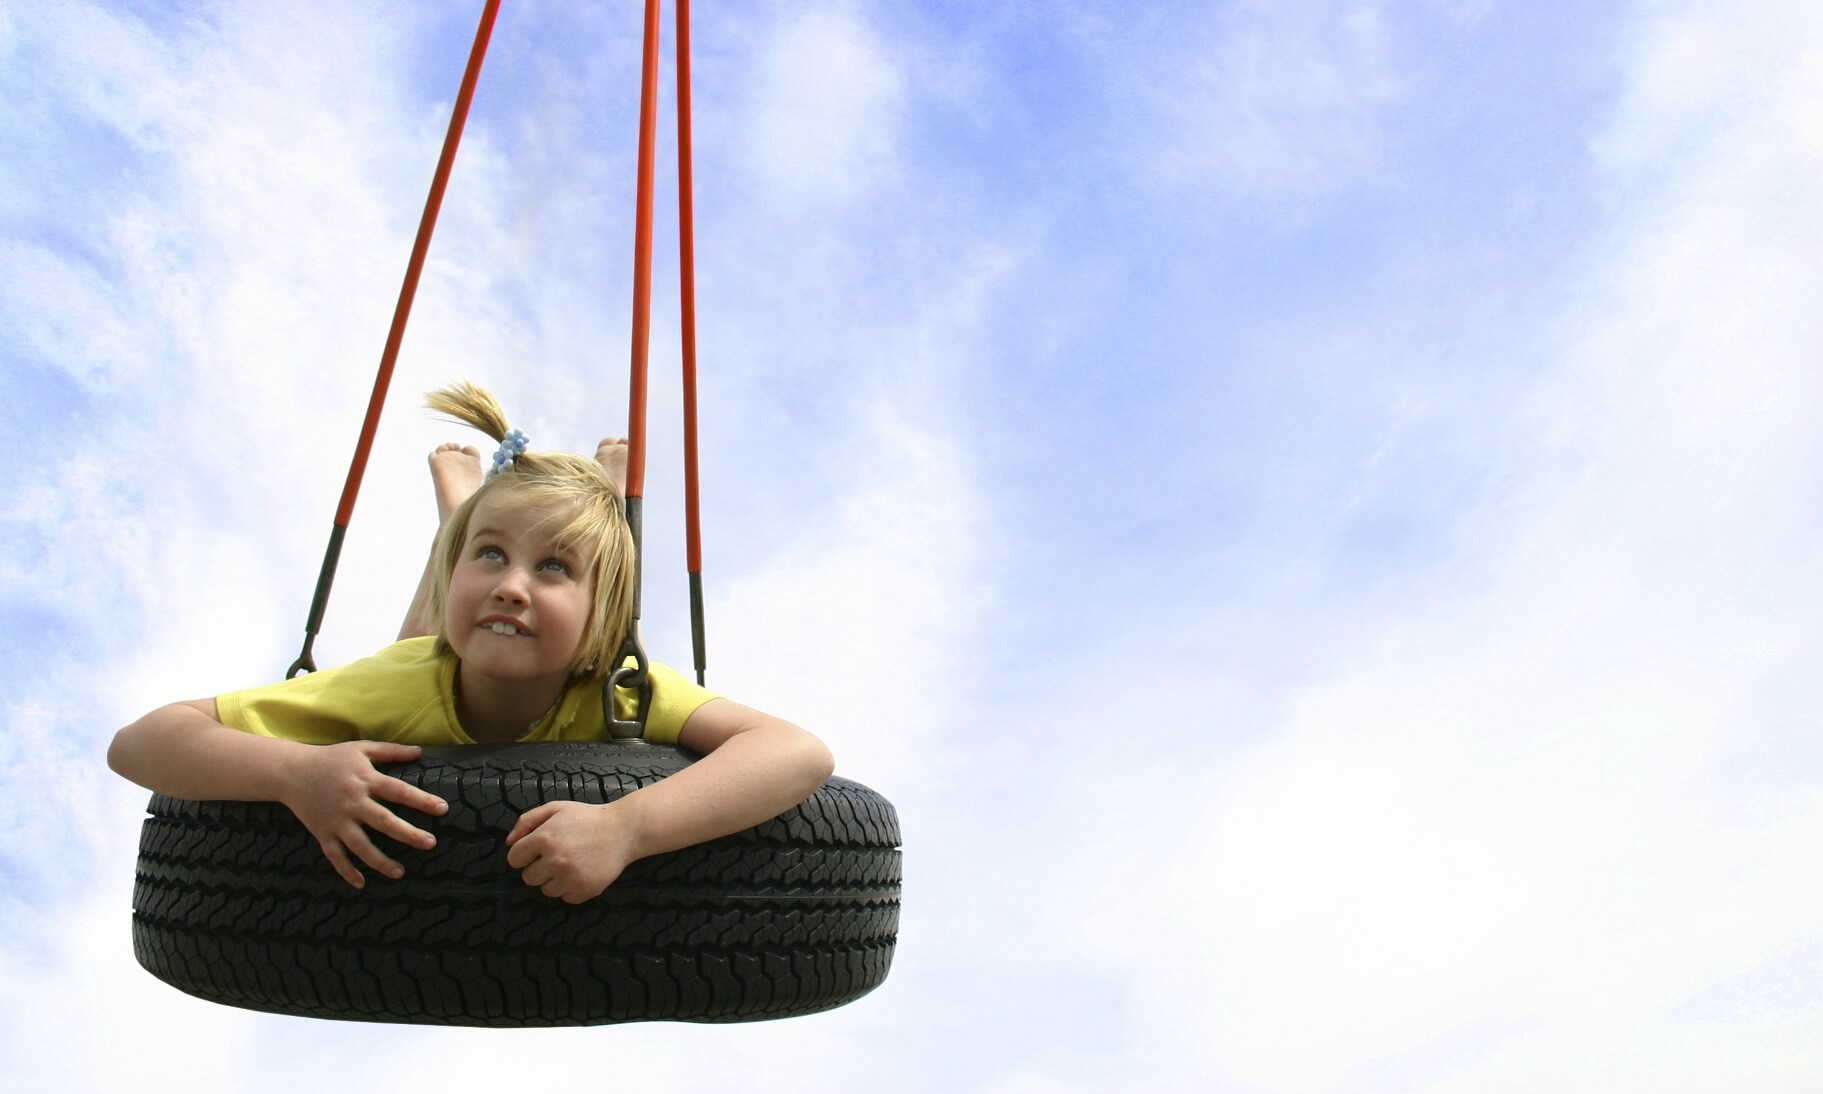 Girl swinging on a tire swing